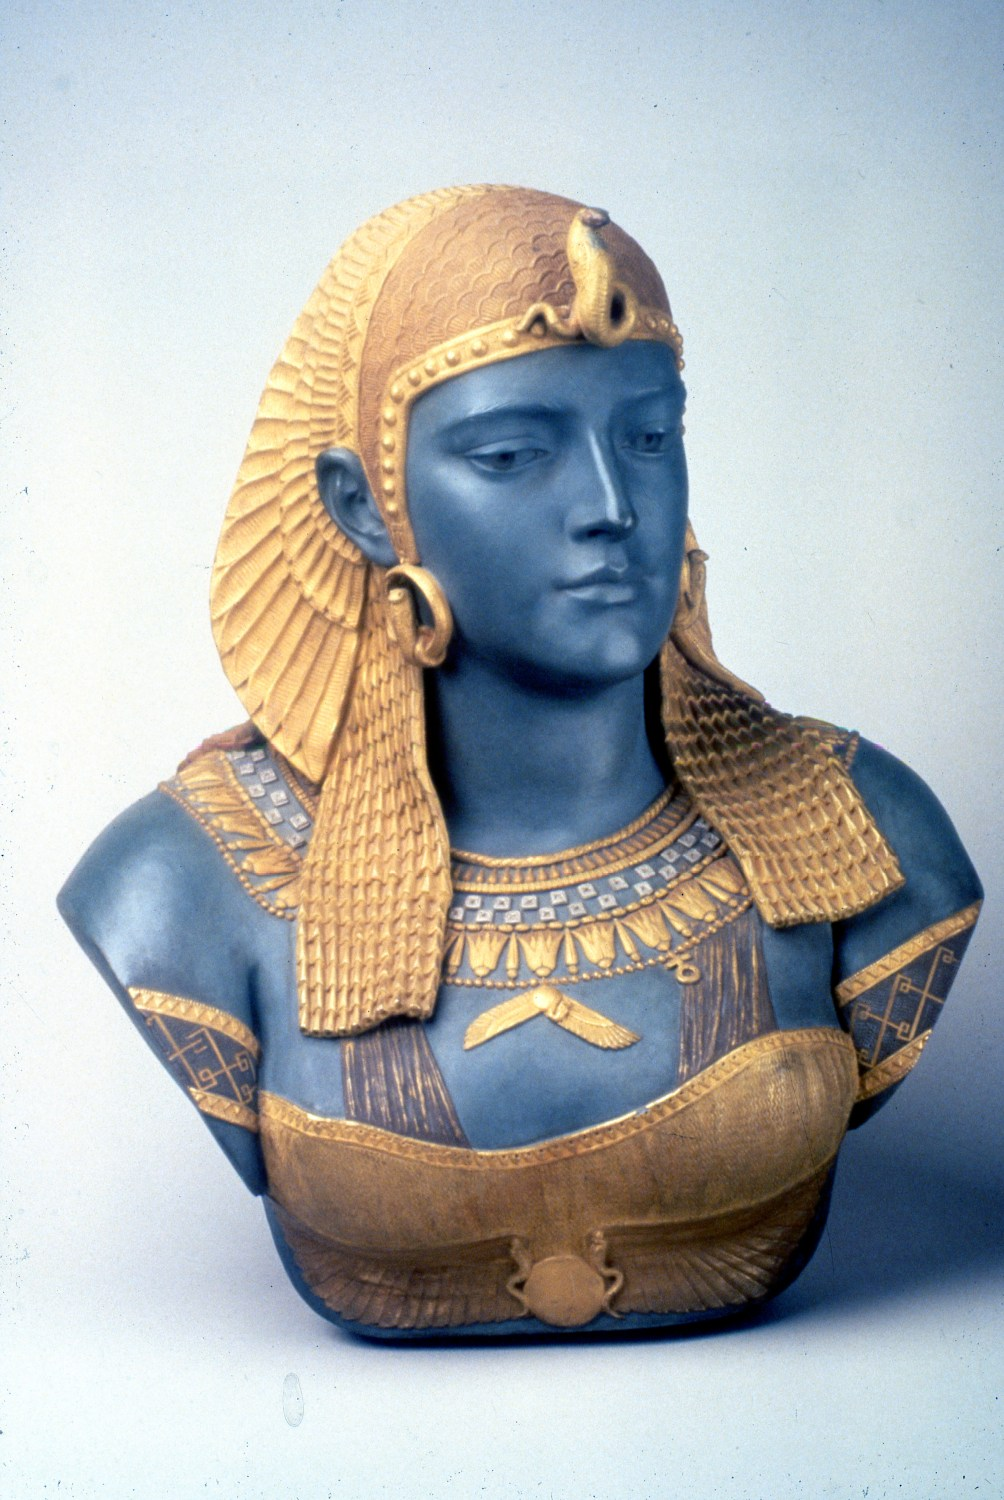 Ott & Brewer, Etruria Works, Bust of Cleopatra, parian, Isaac Broome, designer and modeller, 1876, H 21 in, NJSM 354.24